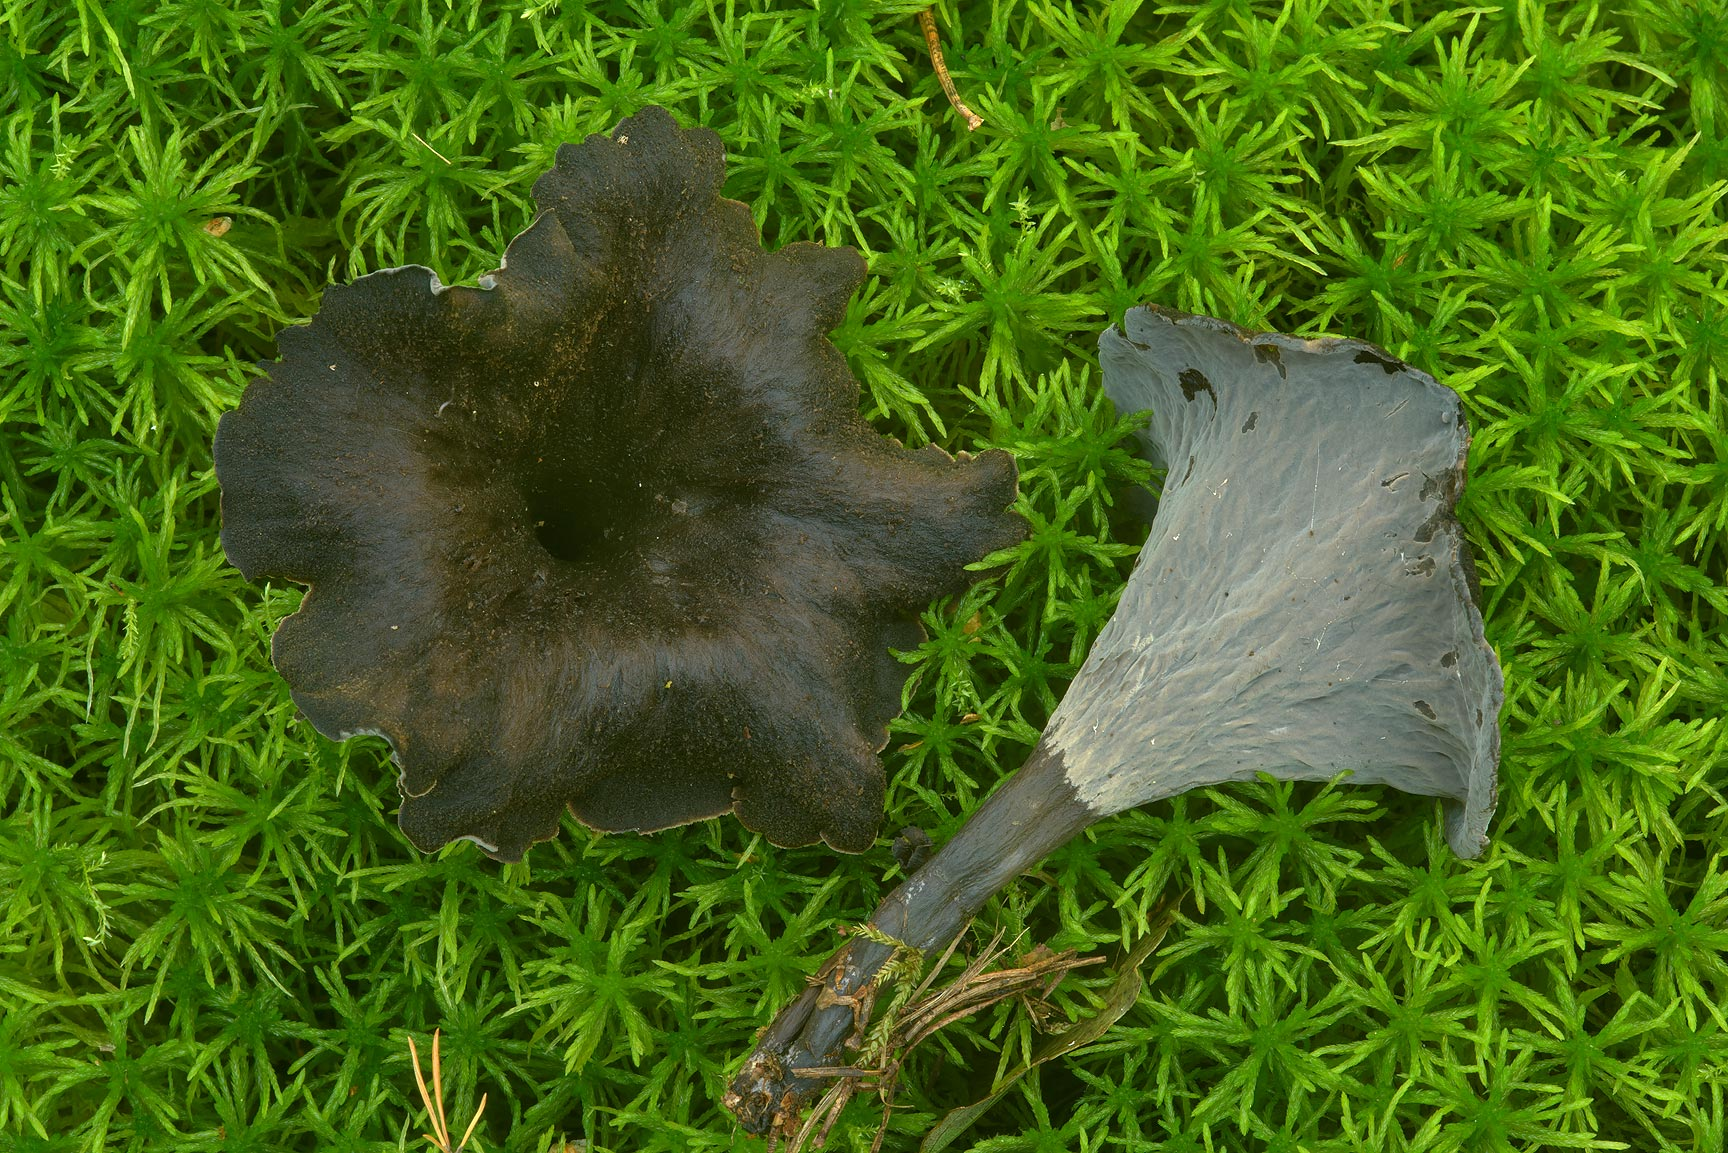 Black trumpet mushrooms (Craterellus...north-west from St.Petersburg, Russia